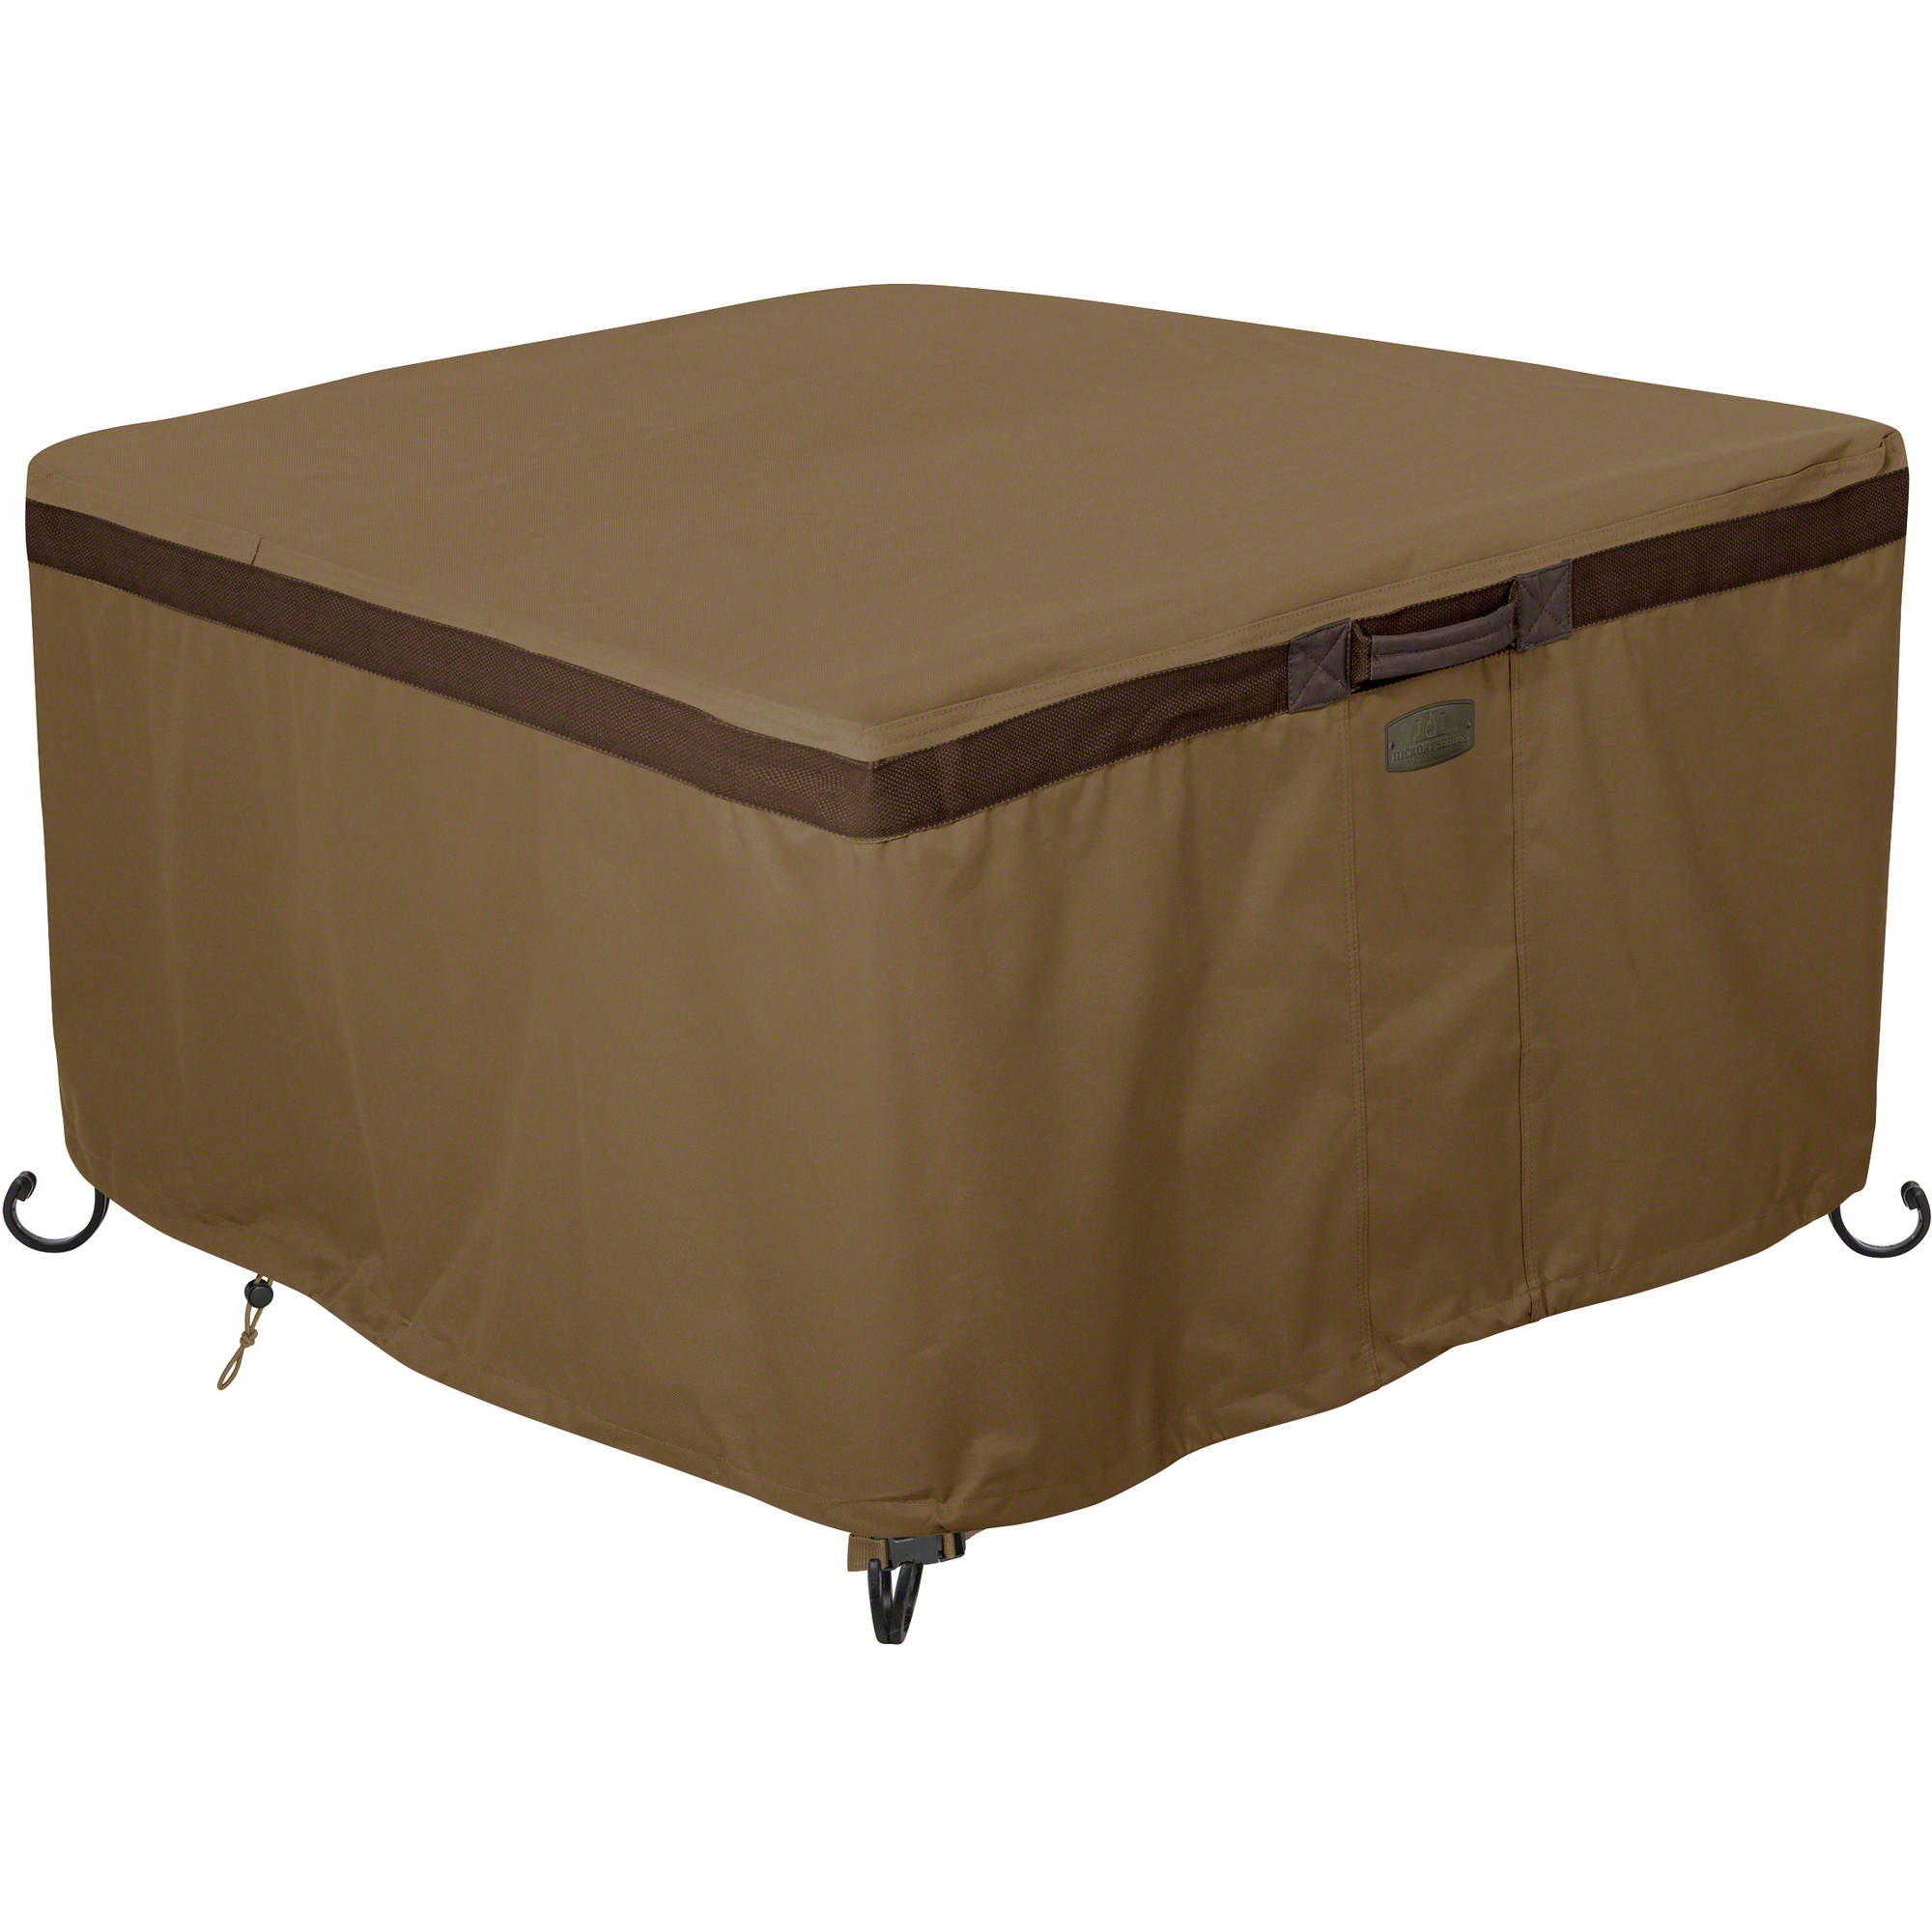 Classic Accessories Hickory Heavy-Duty Fire Pit Table Patio Storage Cover, Square